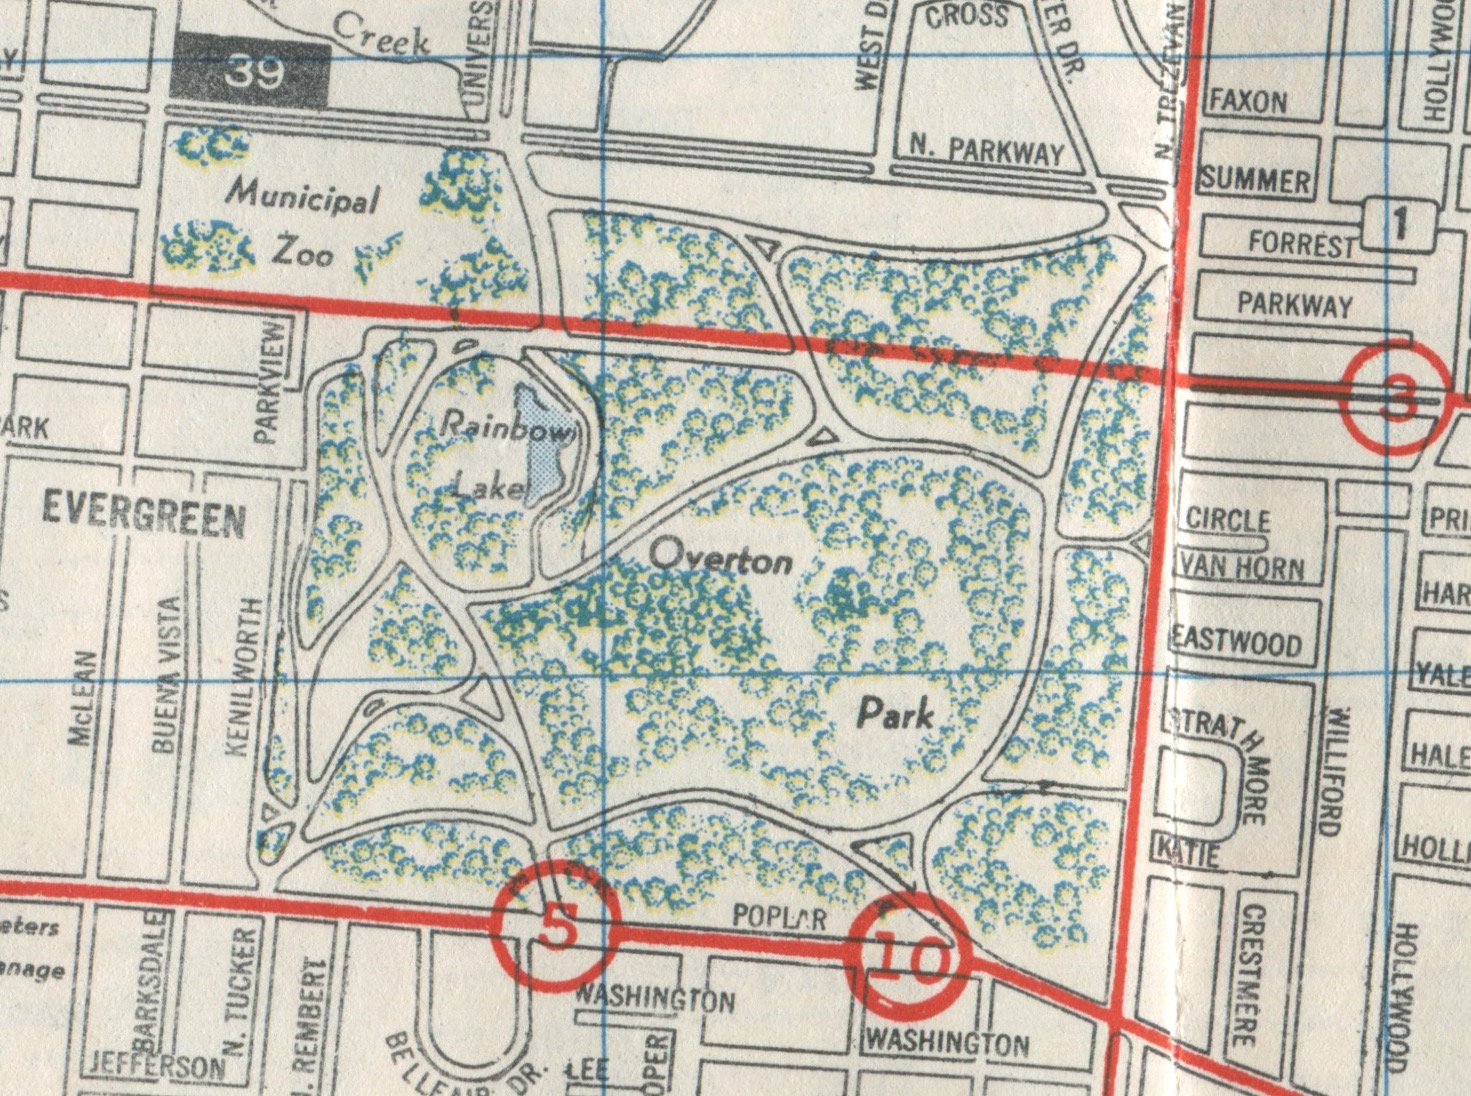 this map shows the bus route along galloway the bus route as shown on this 1954 memphis street railway map drawn by ashburn maps was route number 3